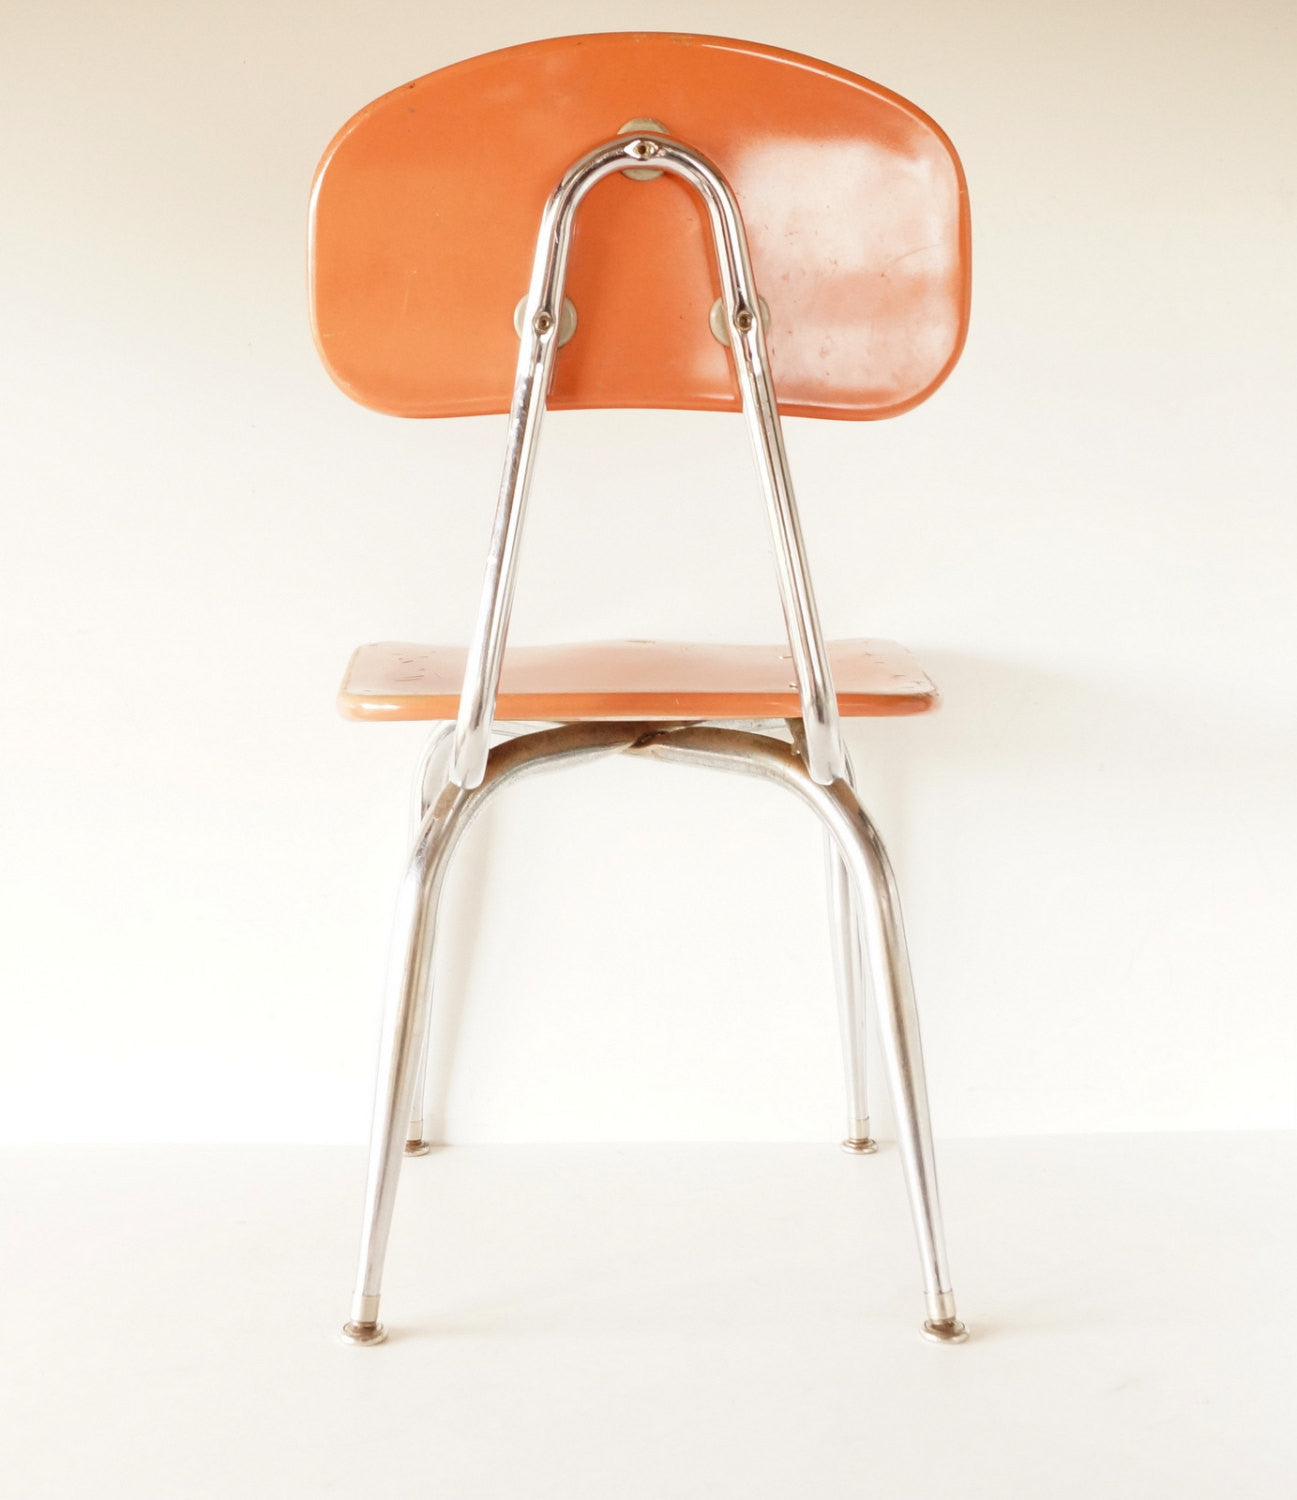 Vintage School Chair Chrome and Orange posite C F Church